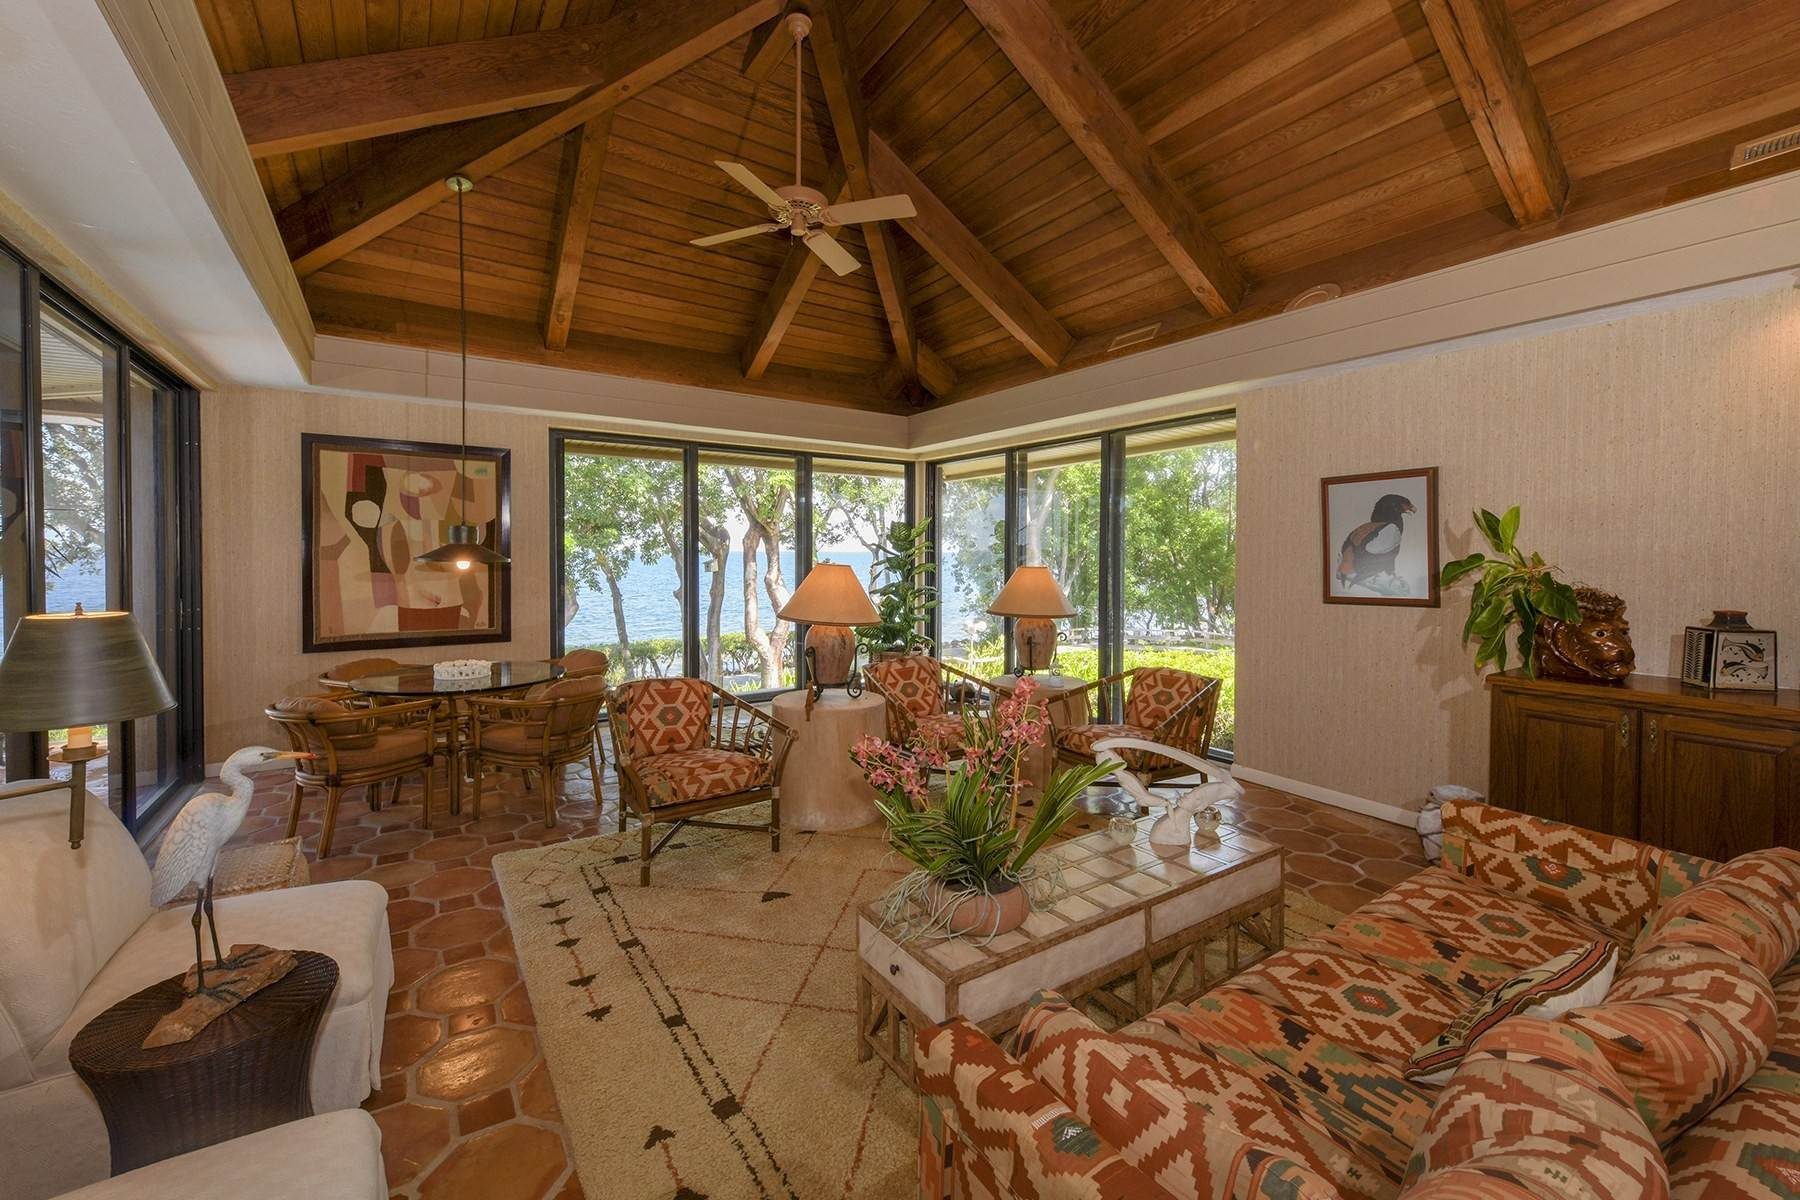 7. Property for Sale at 10 Cannon Point, Key Largo, FL Key Largo, Florida 33037 United States